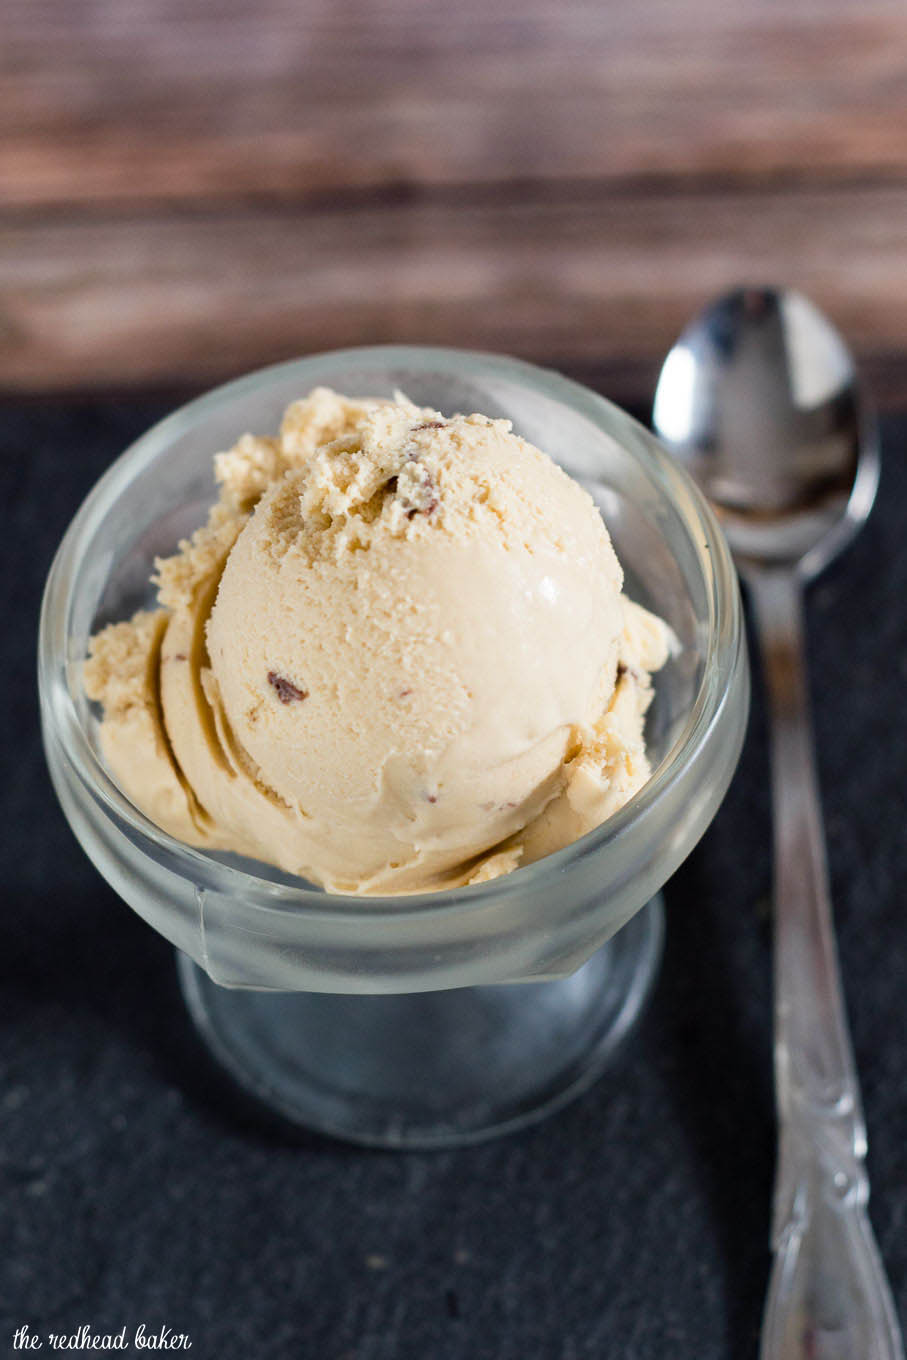 What's better than Irish cream? Irish cream ice cream with a chocolate swirl! Irish cream is blended into custard and churned, then melted chocolate is swirled into the ice cream.